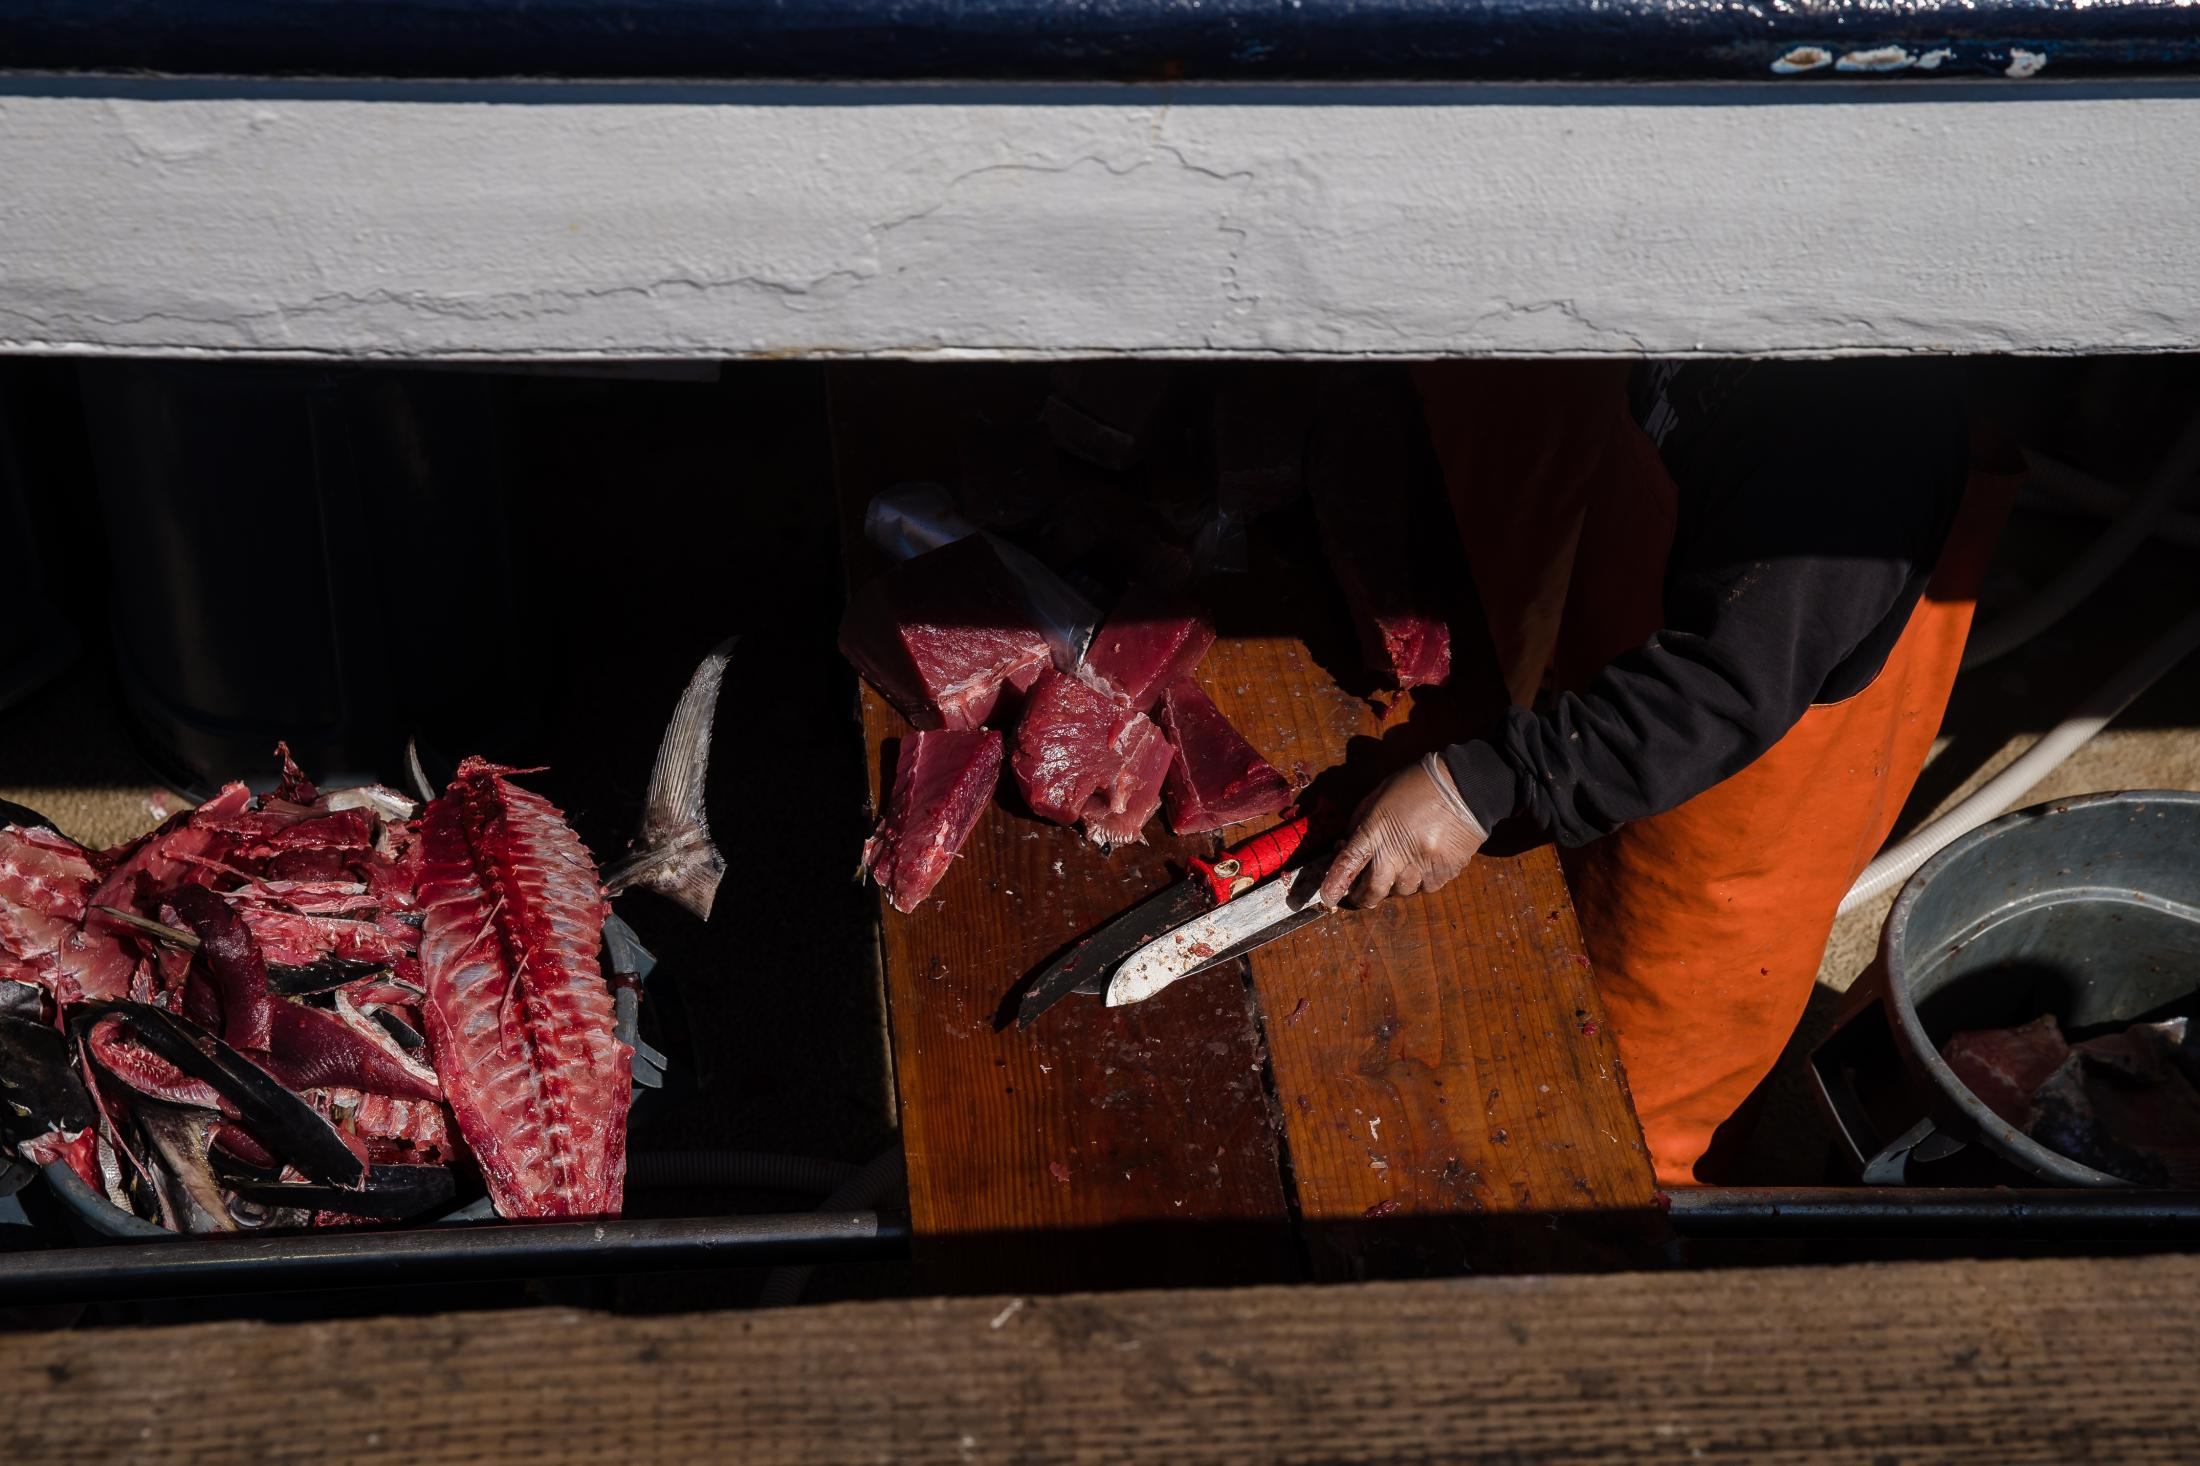 A fisherman cuts fish on the Pacific Horizon fishing Boat, (owned by the Haworth family) at the Tuna Harbor Dockside Market on April 11, 2020 in San Diego, California. Fisherman have had to regroup to stay afloat due to Covid-19. Since local restaurants have been shut down and not every establishment is doing take-out or deliveries, they have to had to lower their cost for the locals who have been purchasing their fish.